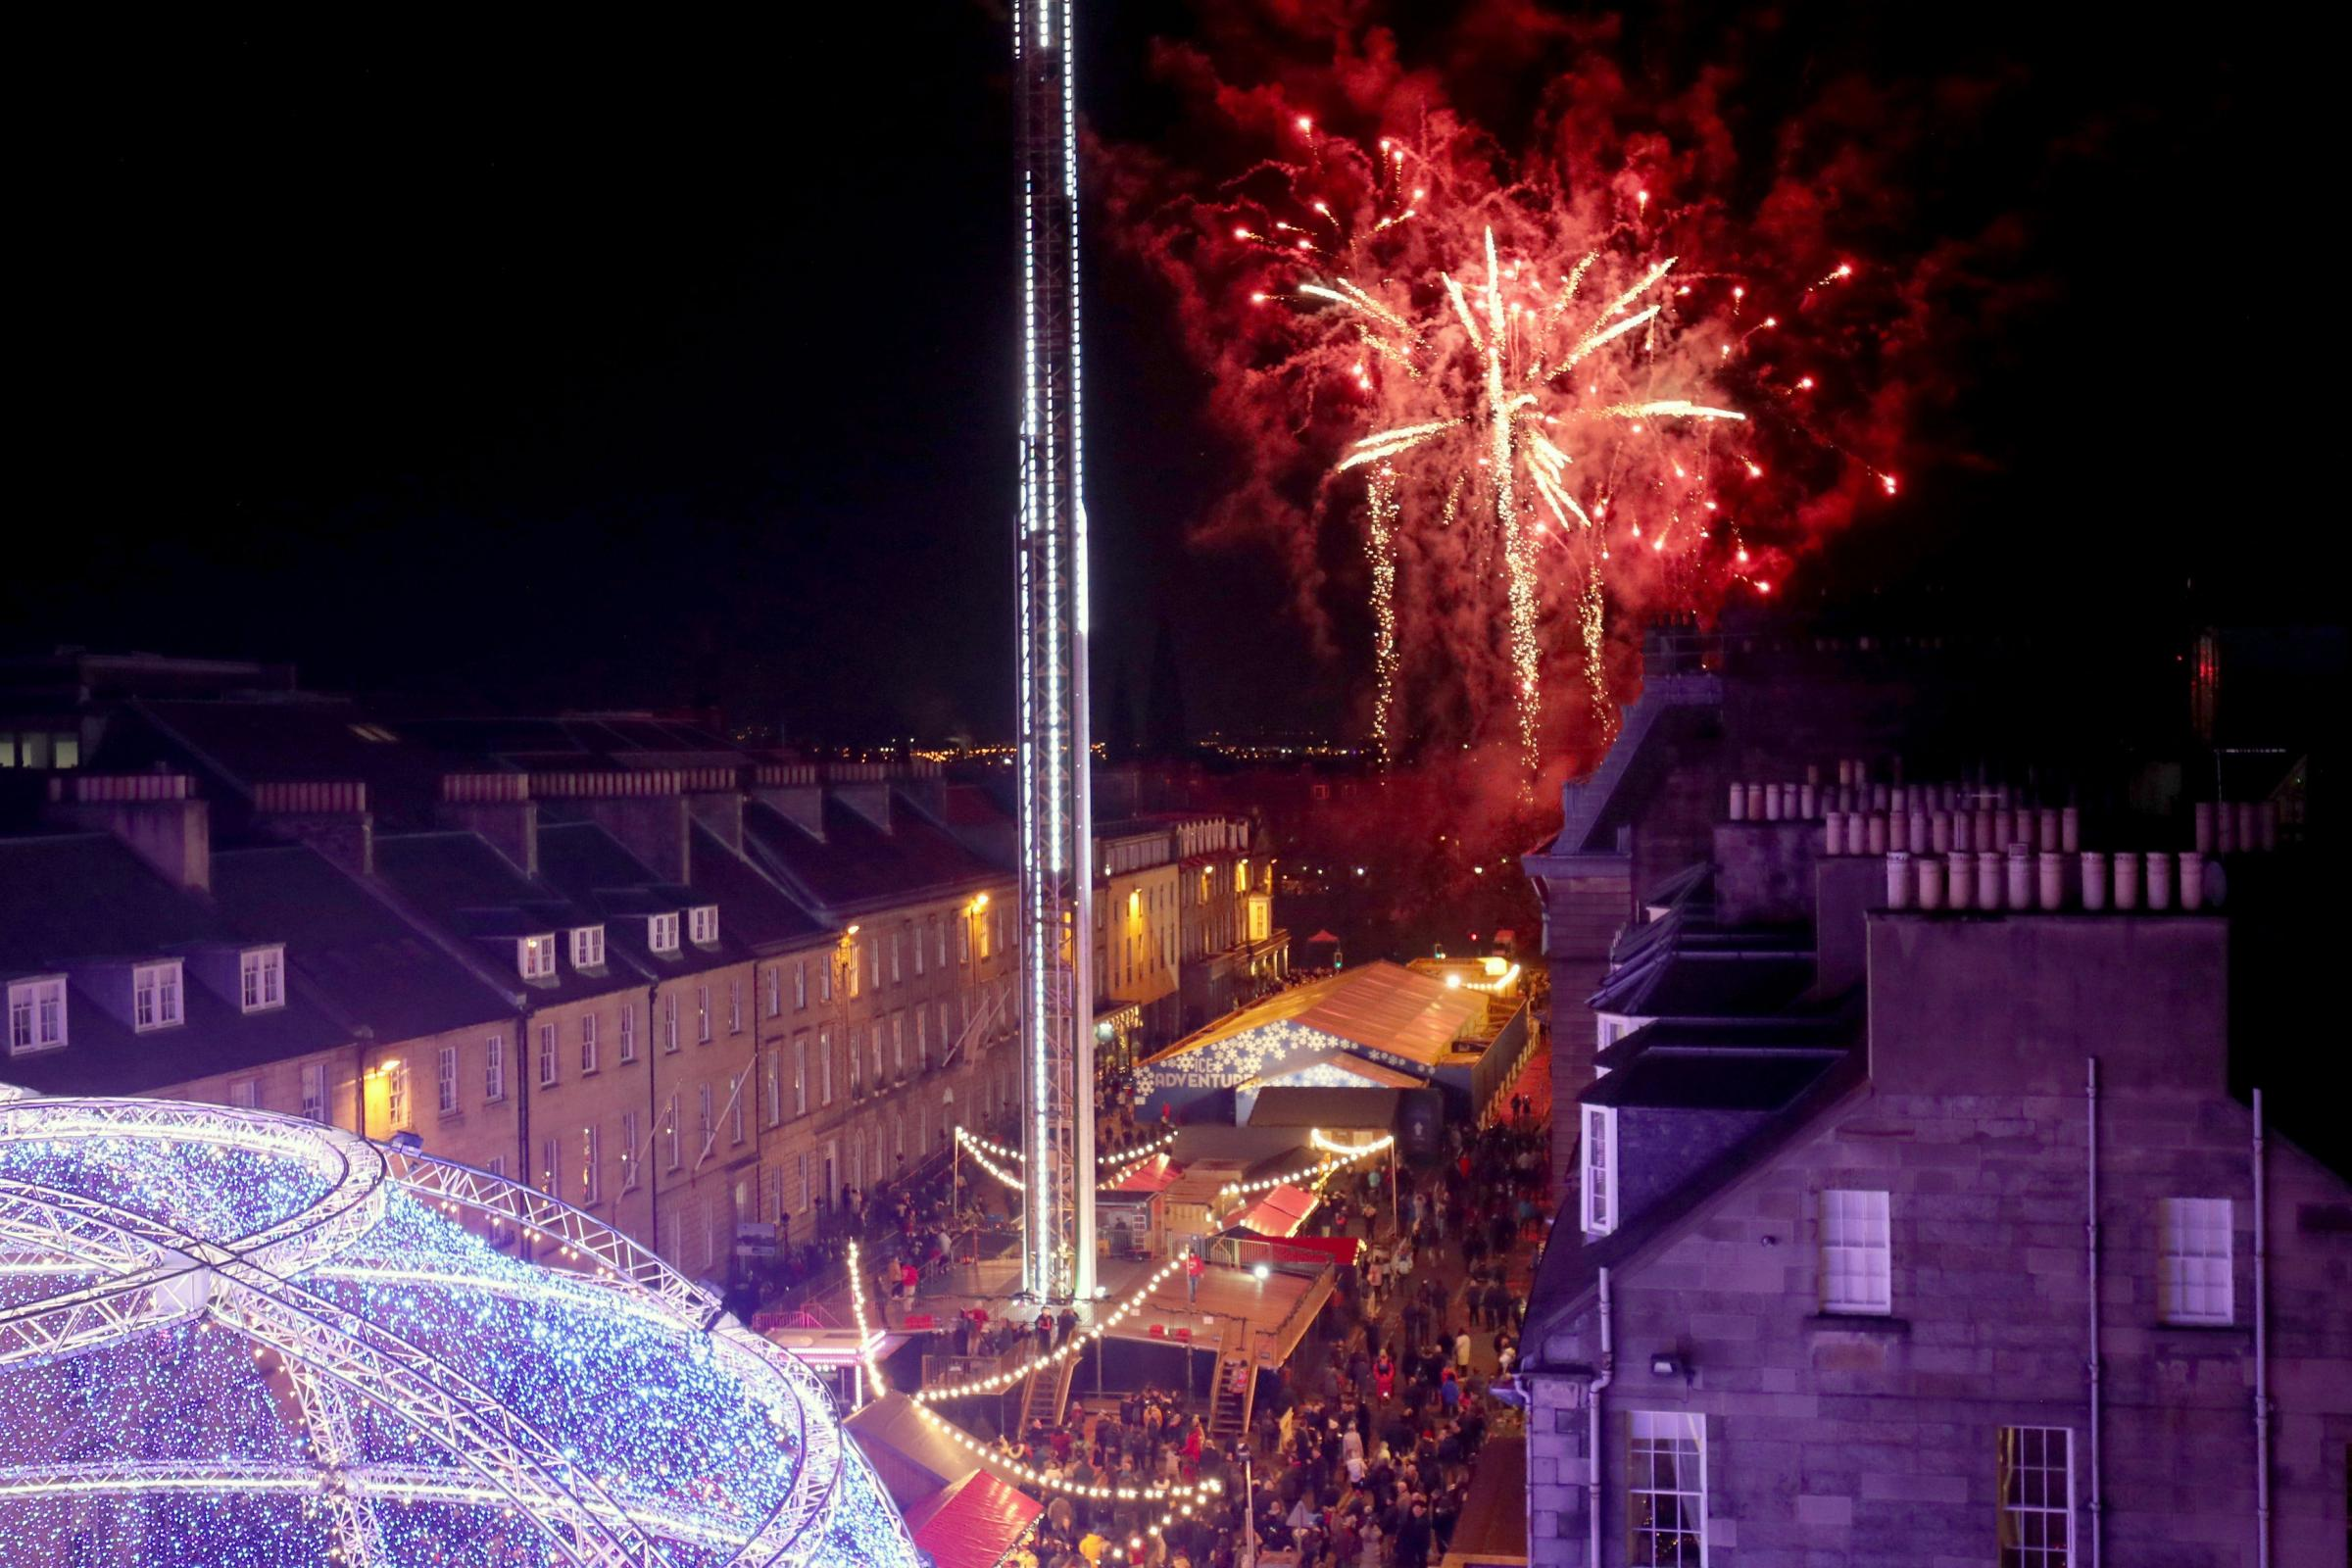 Edinburgh's Christmas welcomes nearly one million visitors, analysis finds